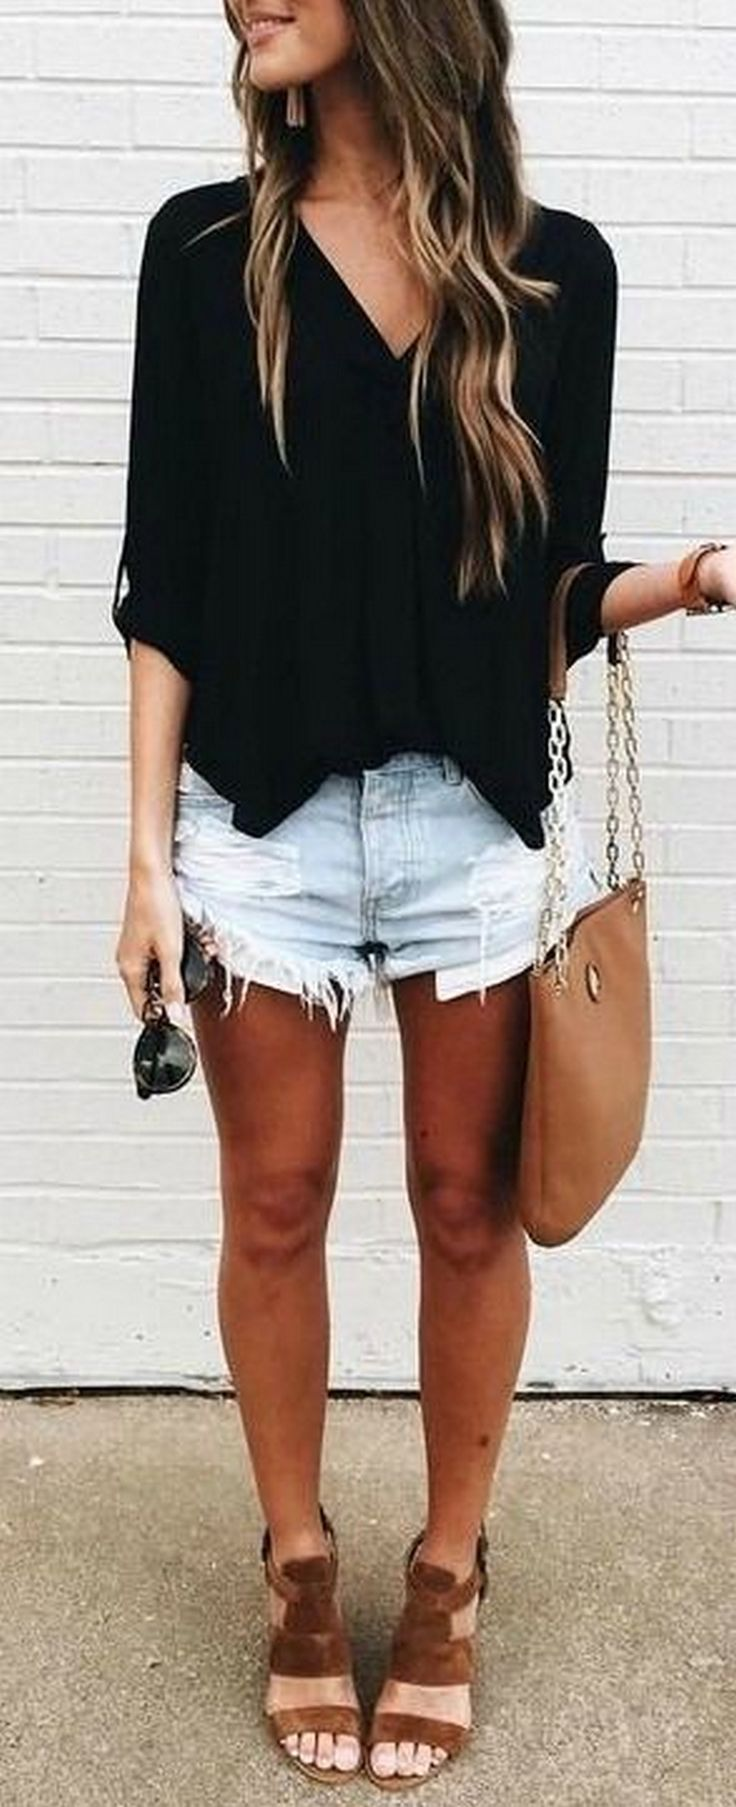 Top Stylish Summer Outfits Ideas (89)